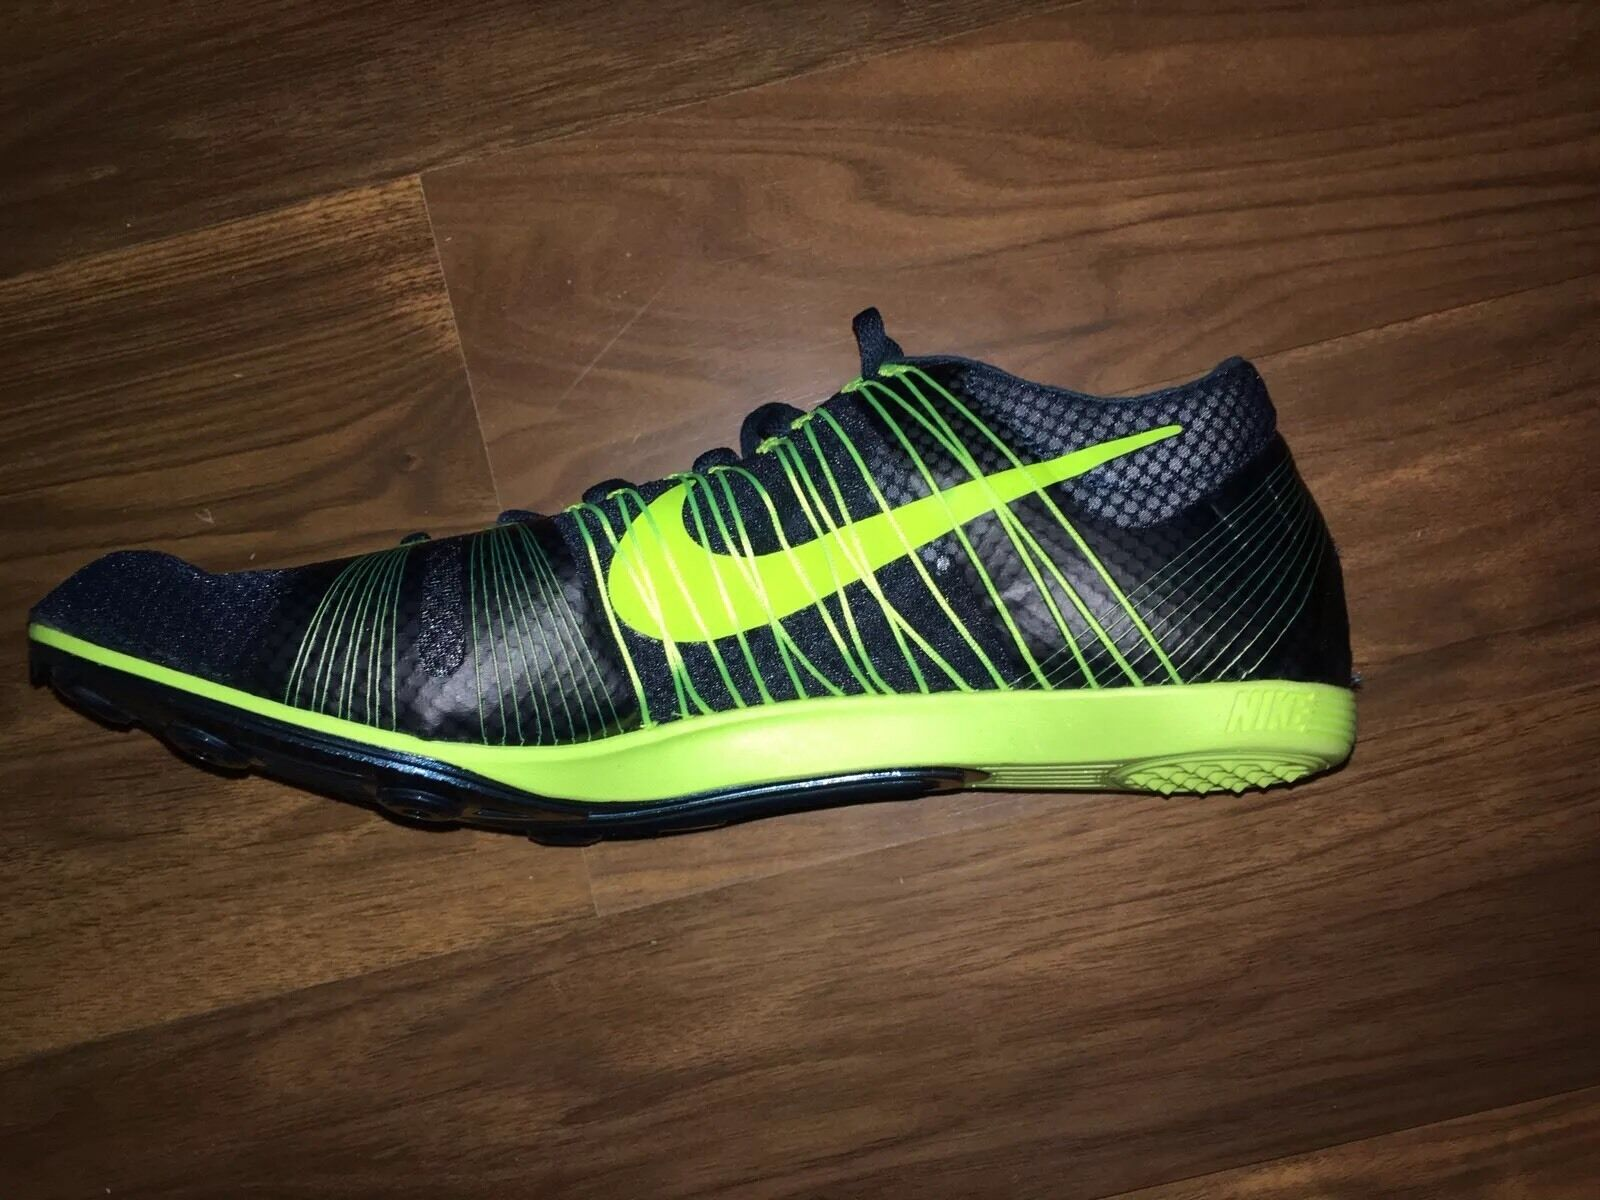 NIKE ZOOM VICTORY 2 Unisex Track Spikes  In esecuzione 555365 303 verde  Spikes  8f7de9